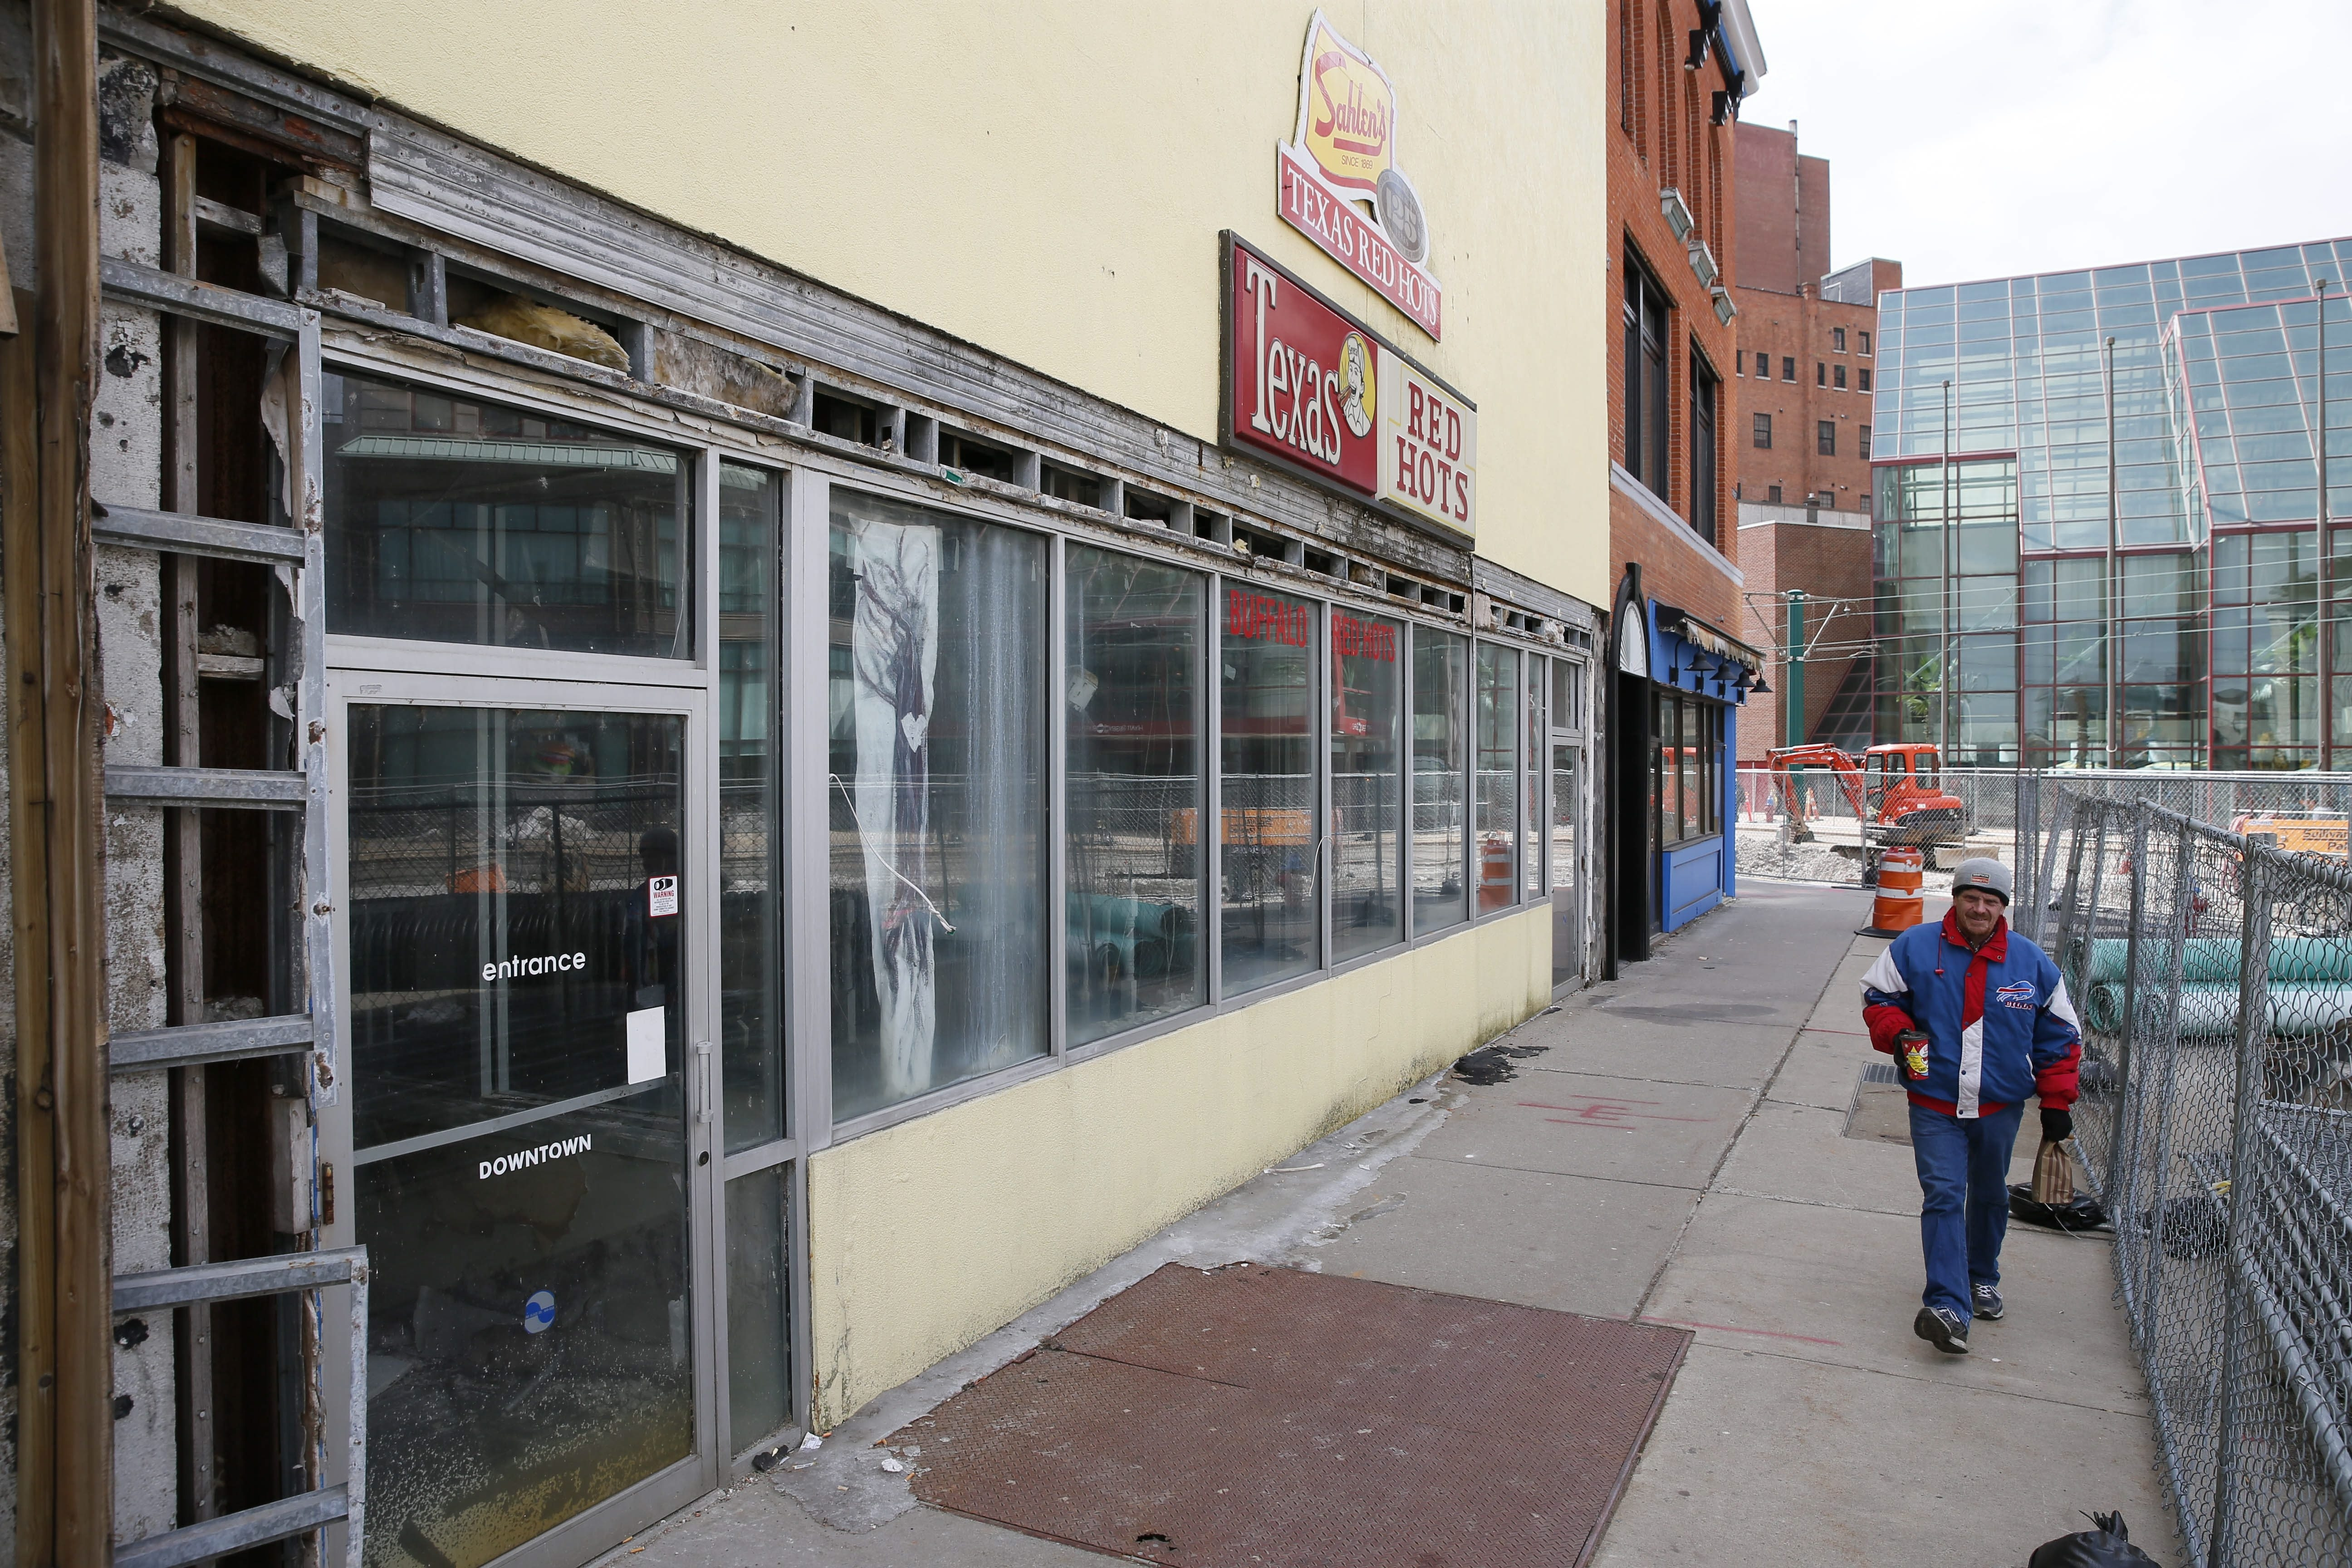 This stretch of buildings on Genesee Street will be restored to its mid-19th century look thanks to a project by architect Steven J. Carmina.